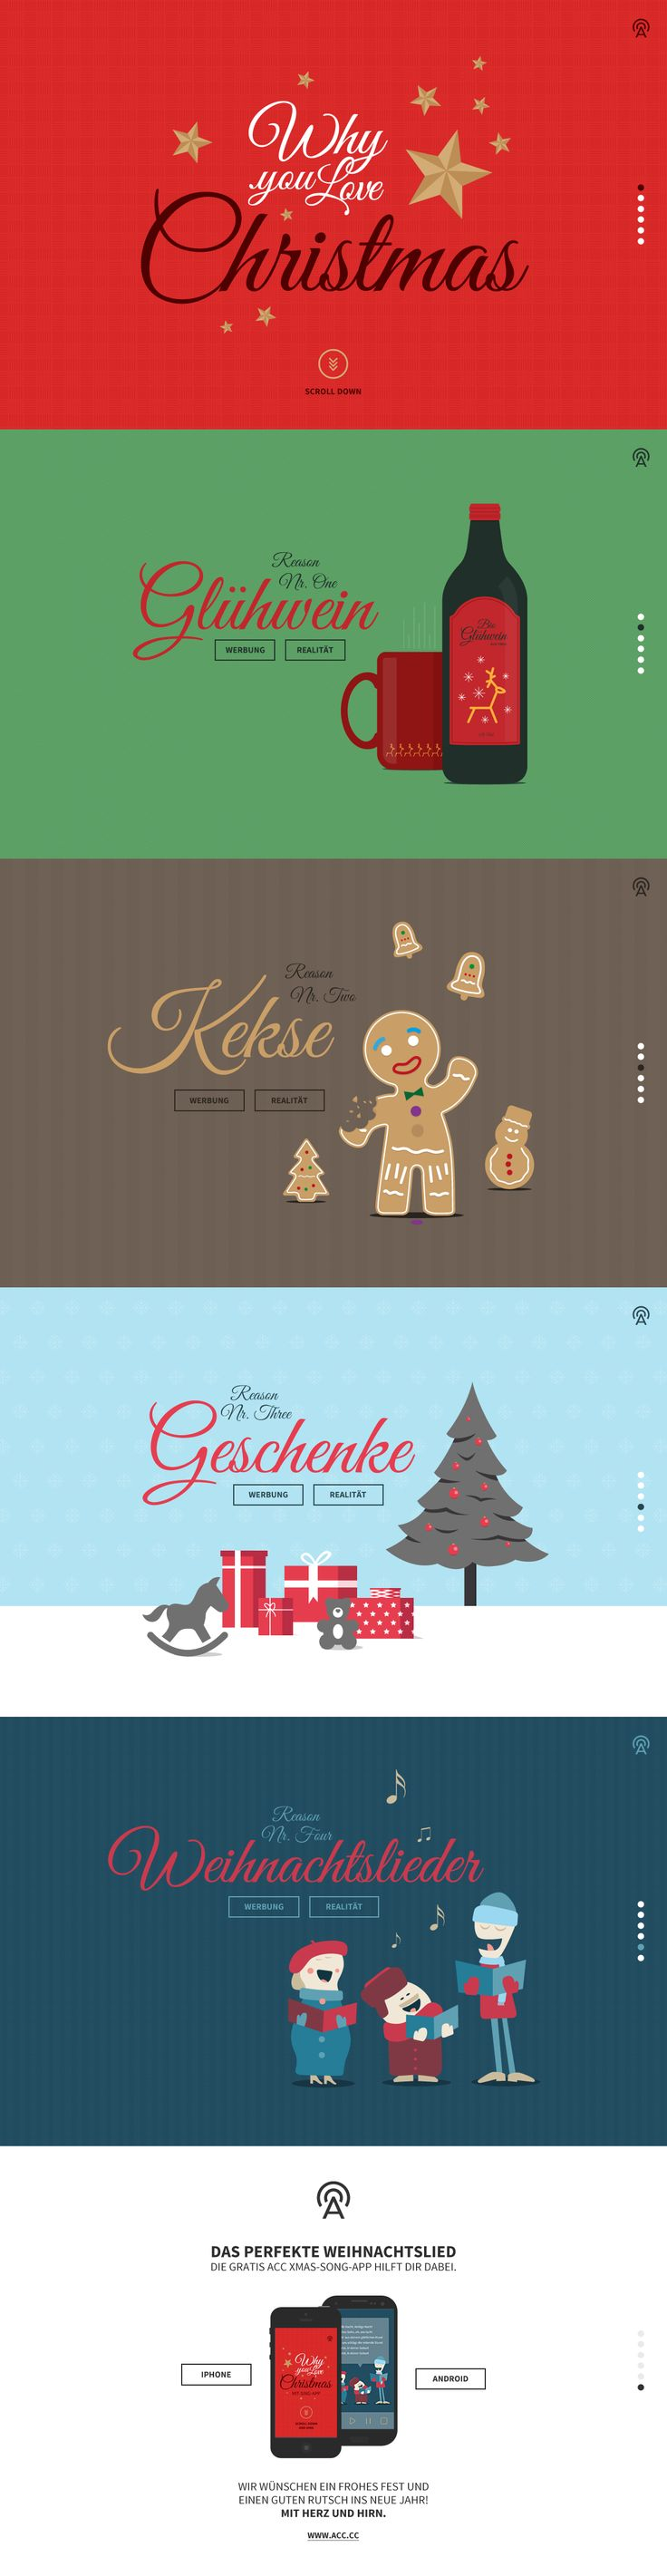 485 best Christmas images on Pinterest | Christmas ideas ...